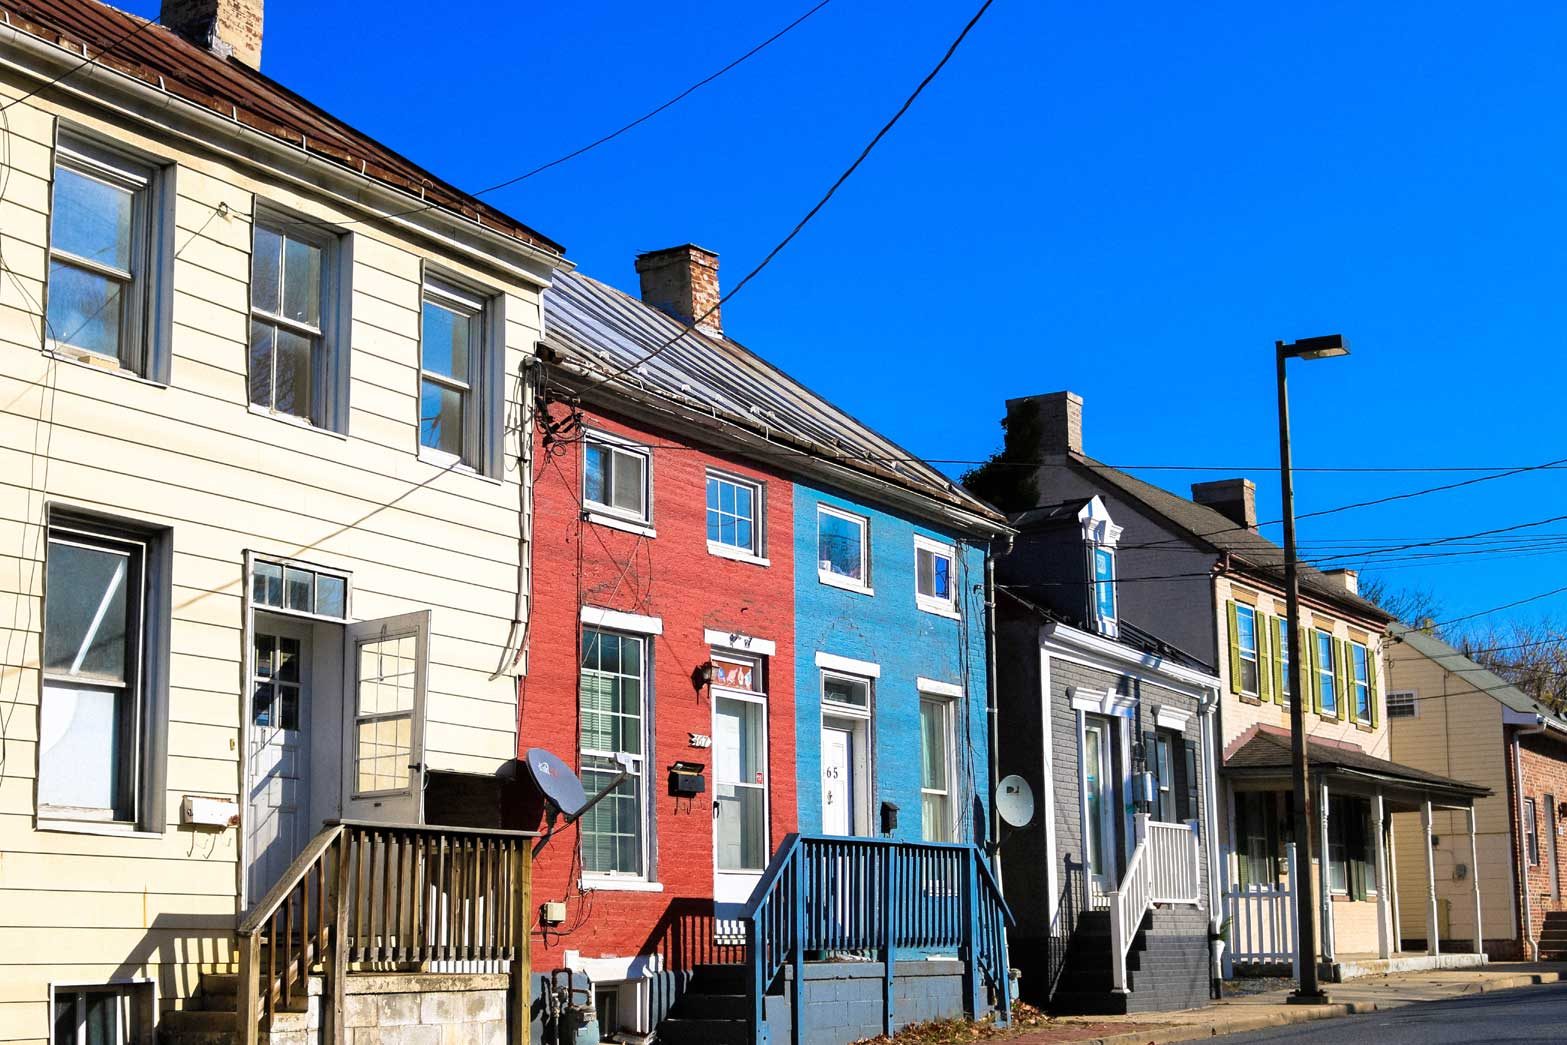 Row houses in Frederick, MD